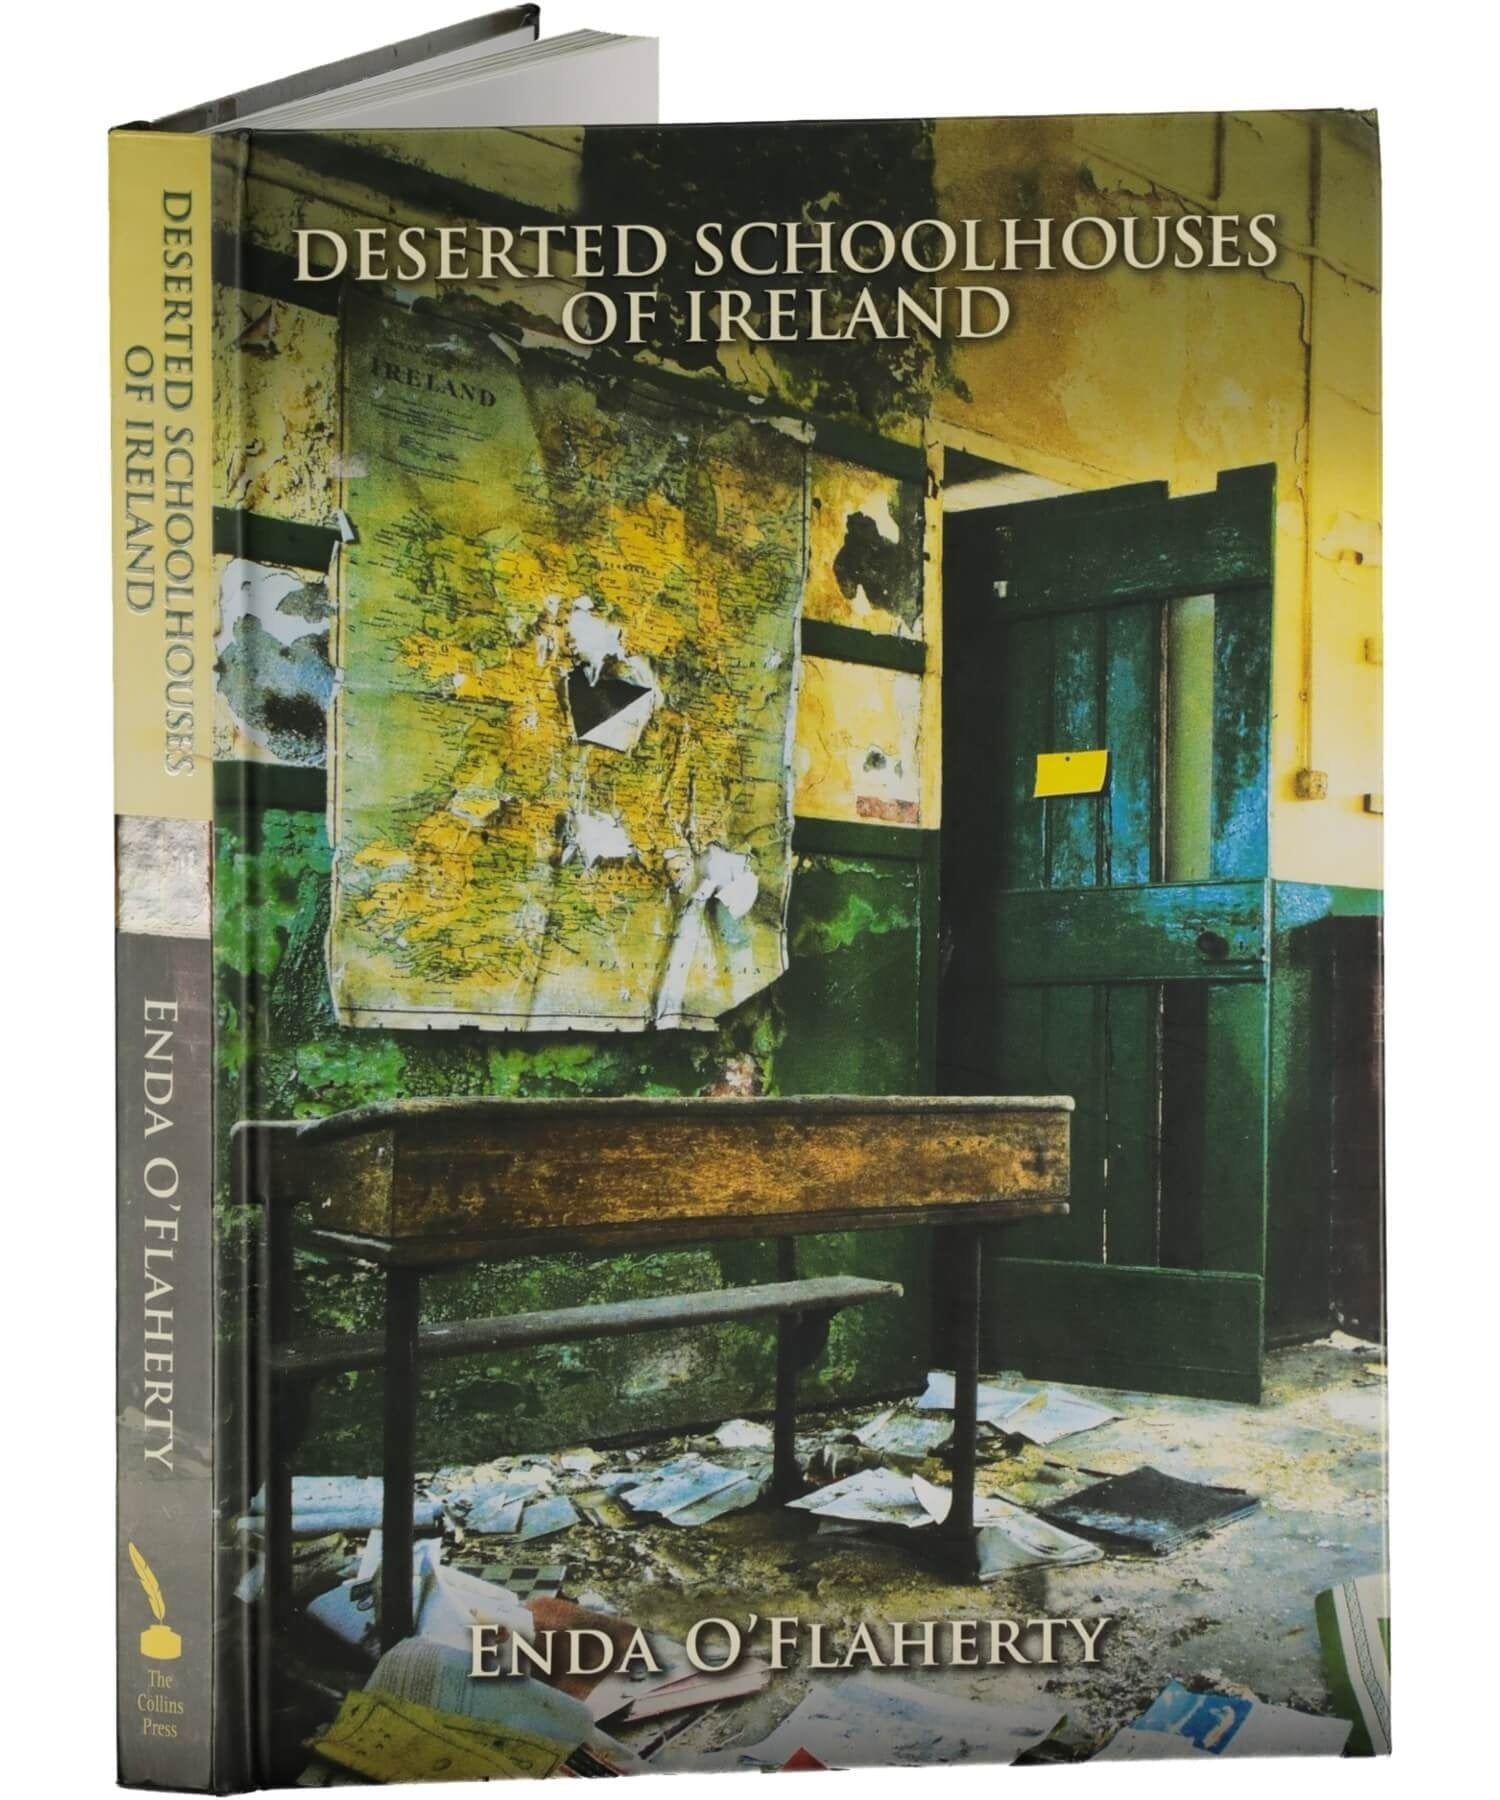 Deserted Schoolhouses Of Ireland - [The Collins Press] - Books & Stationery - Irish Gifts